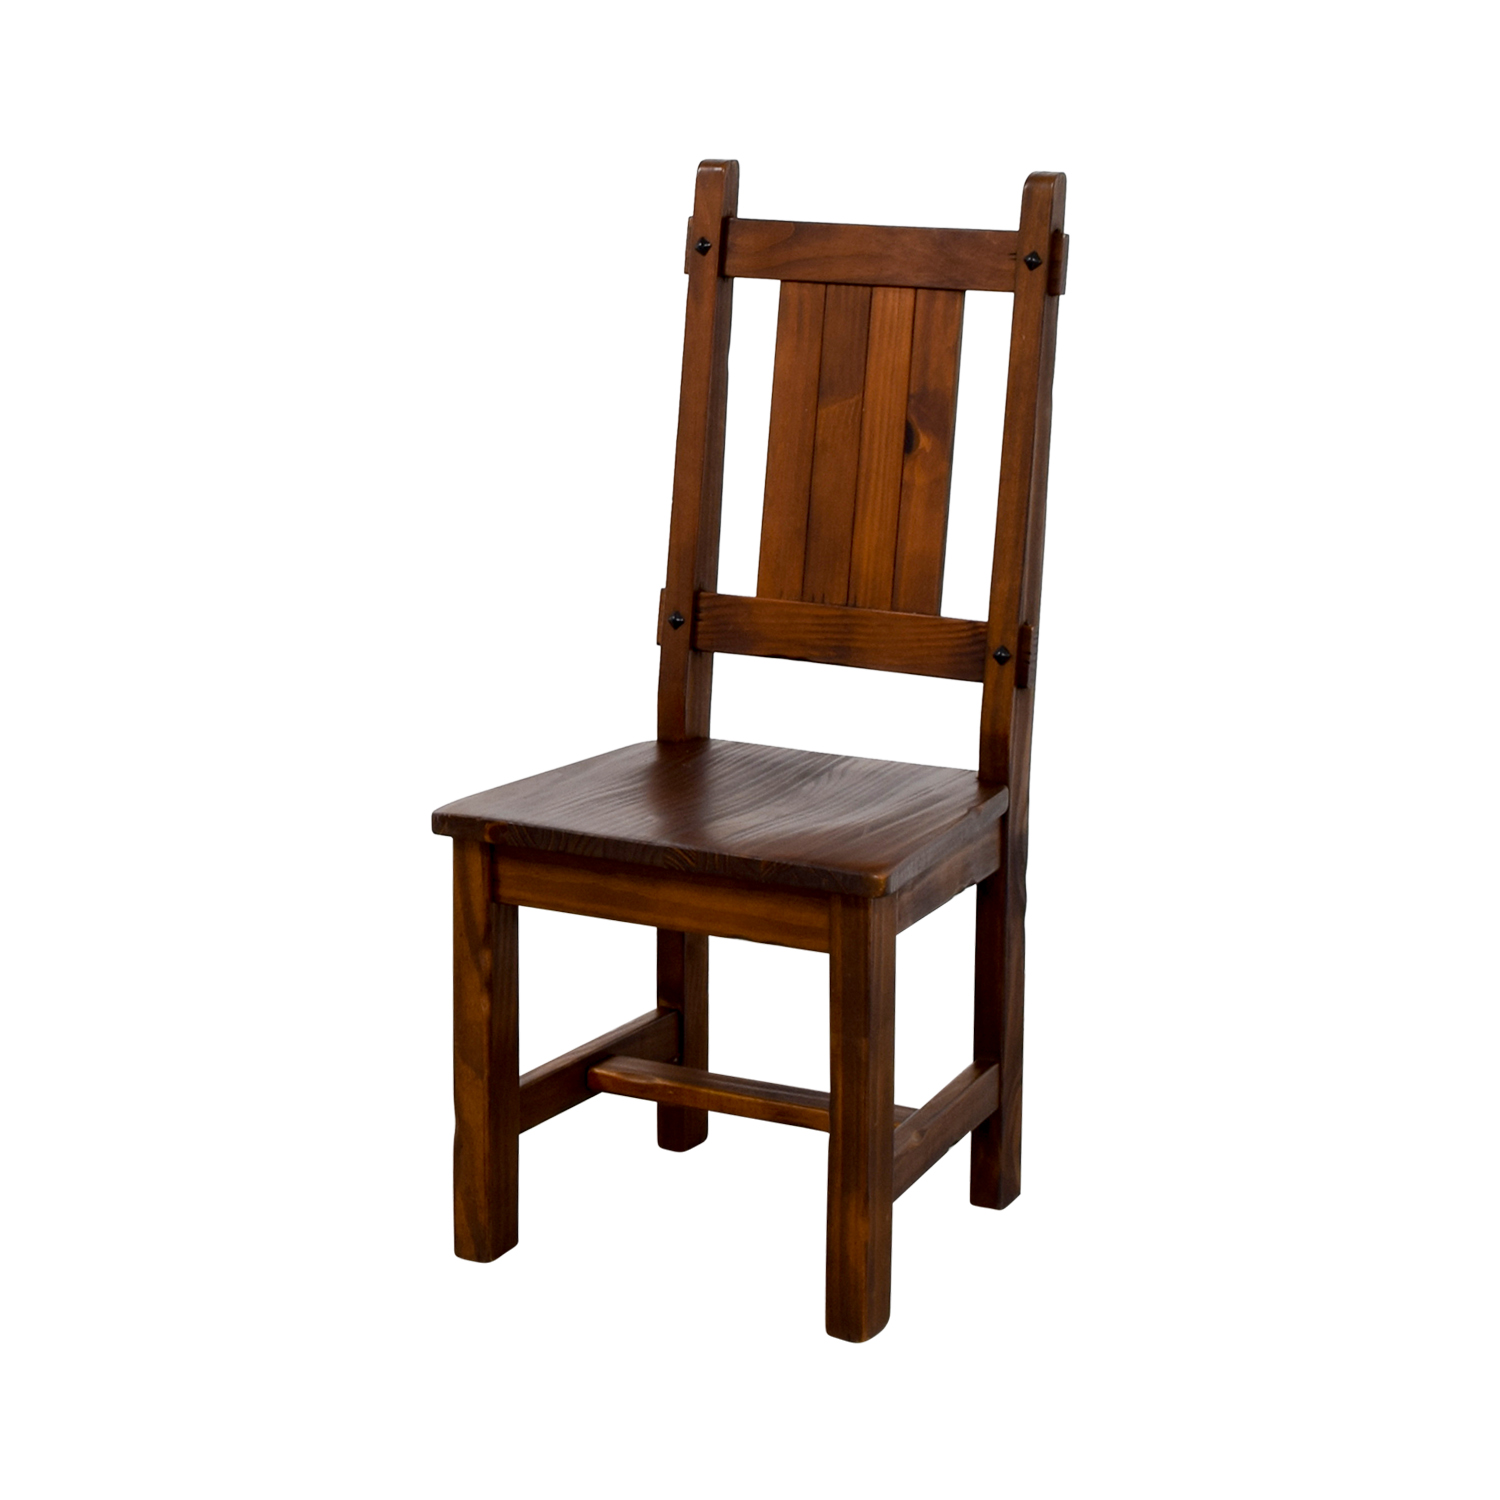 Stickley Chair 45 Off Stickley Stickley Mission Chair Chairs